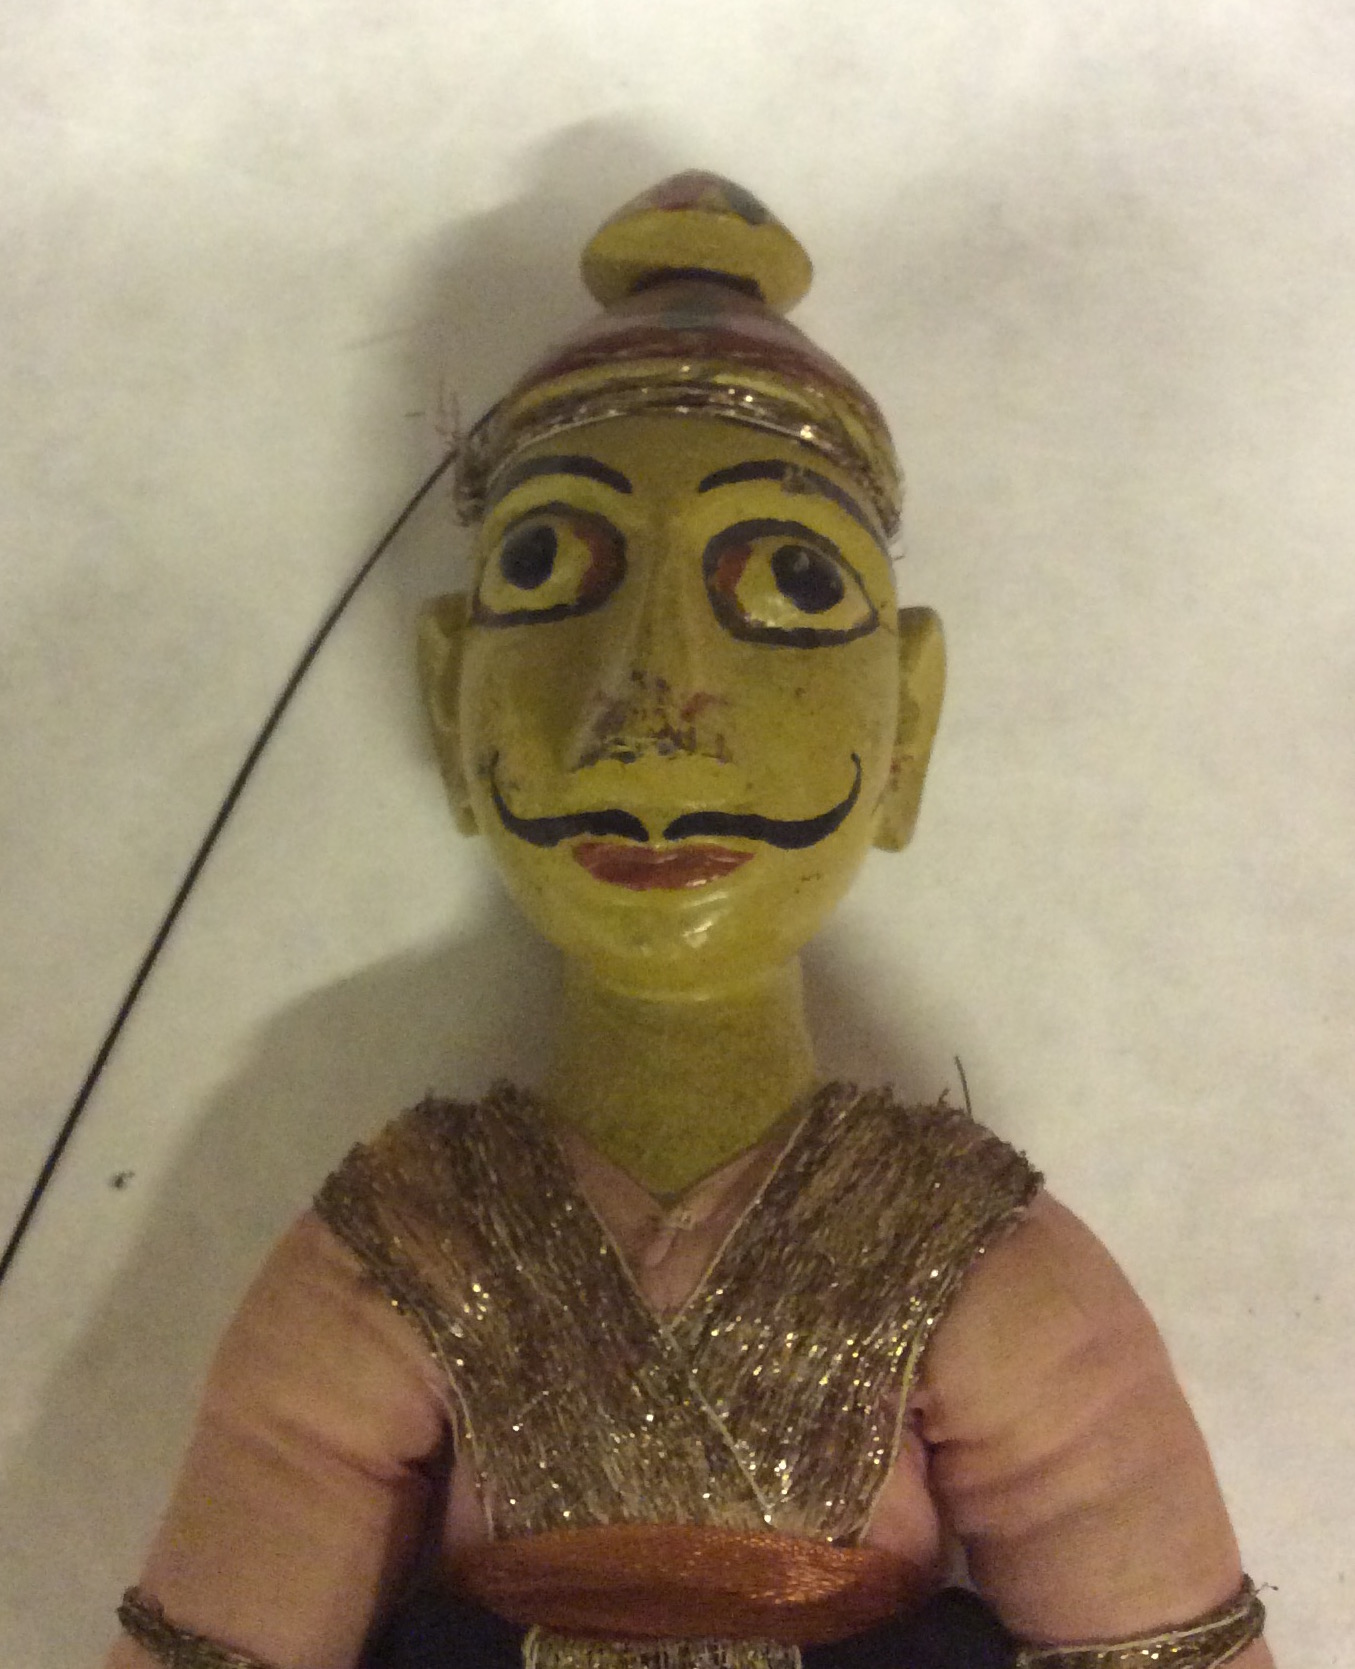 Un détail, un guerrier rajasthani, une marionnette à fils, <em>kathputli</em>, du Rajasthan, en Inde, hauteur: 52 <em>c</em>m. Colle<em>c</em>tion : Center for Puppetry Arts (Atlanta, Géorgie, États-Unis). Photo réproduite avec l'aimable autorisation de Center for Puppetry Arts